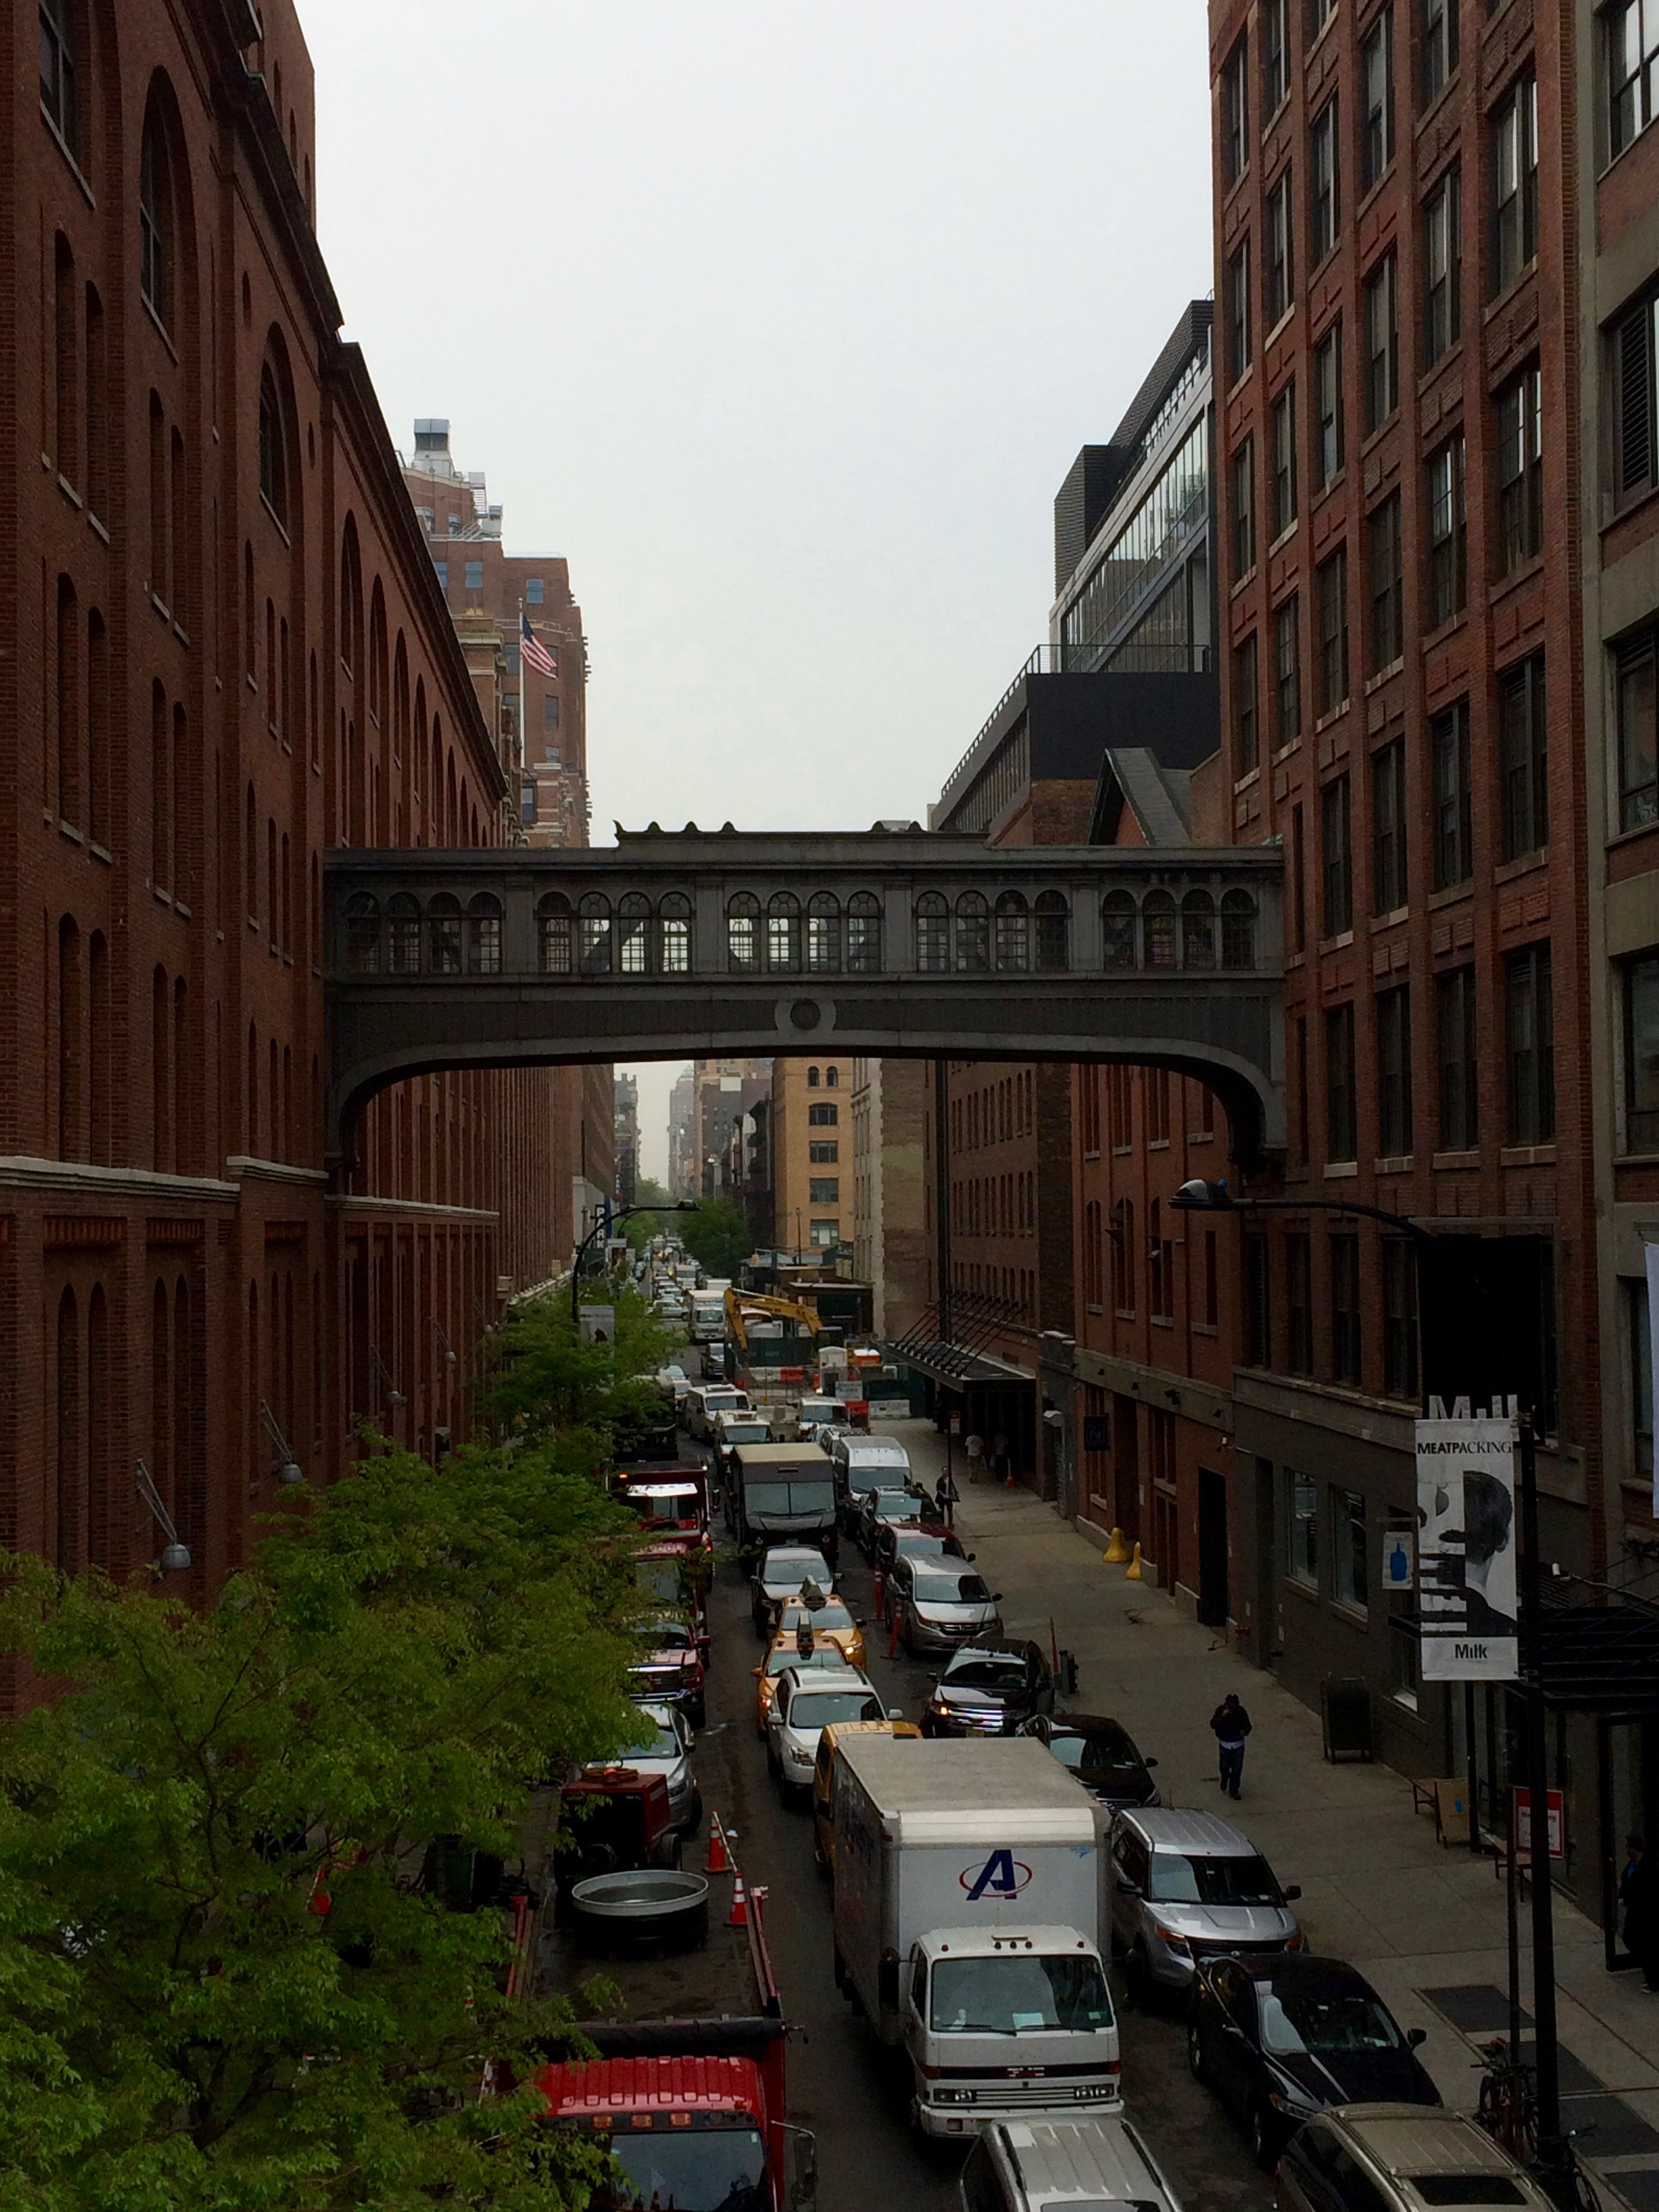 A view of the building that houses the Chelsea Market from the High Line